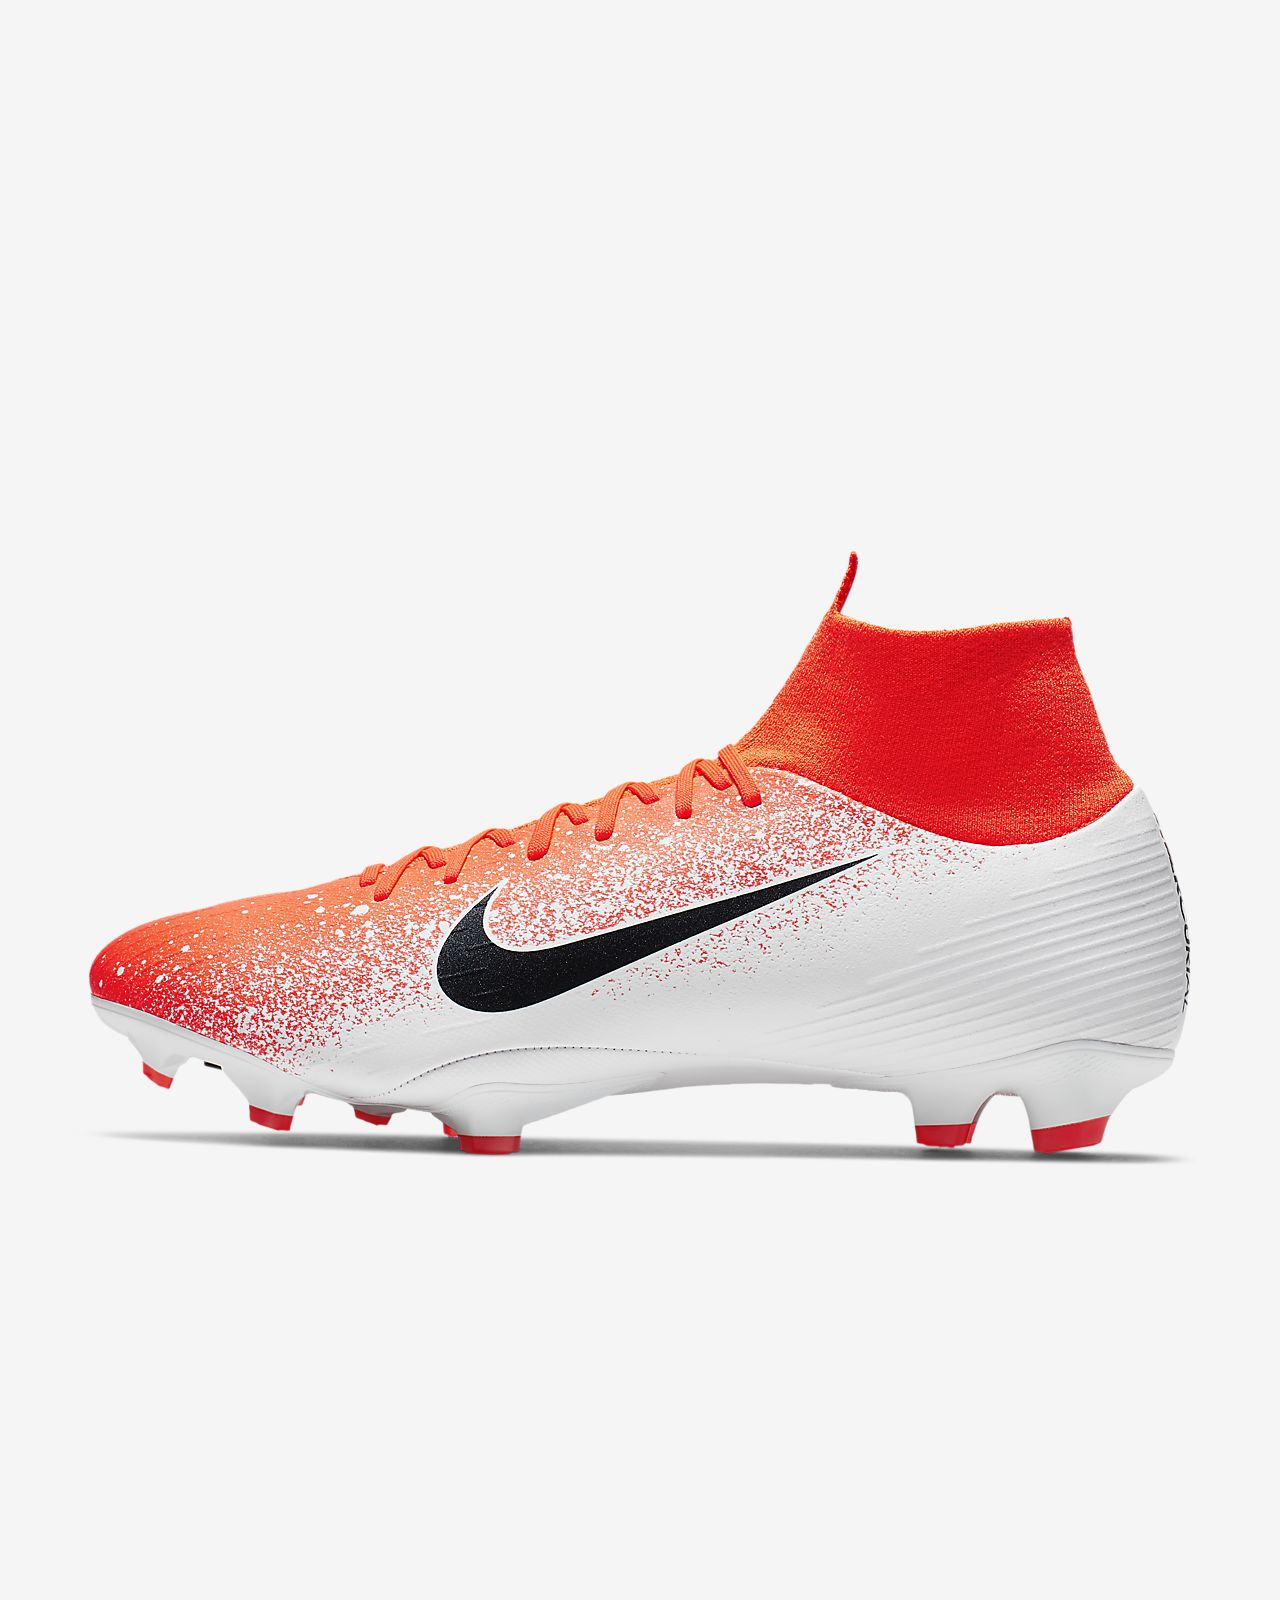 889a25539024 Nike Superfly 6 Pro FG Firm-Ground Soccer Cleat . Nike.com